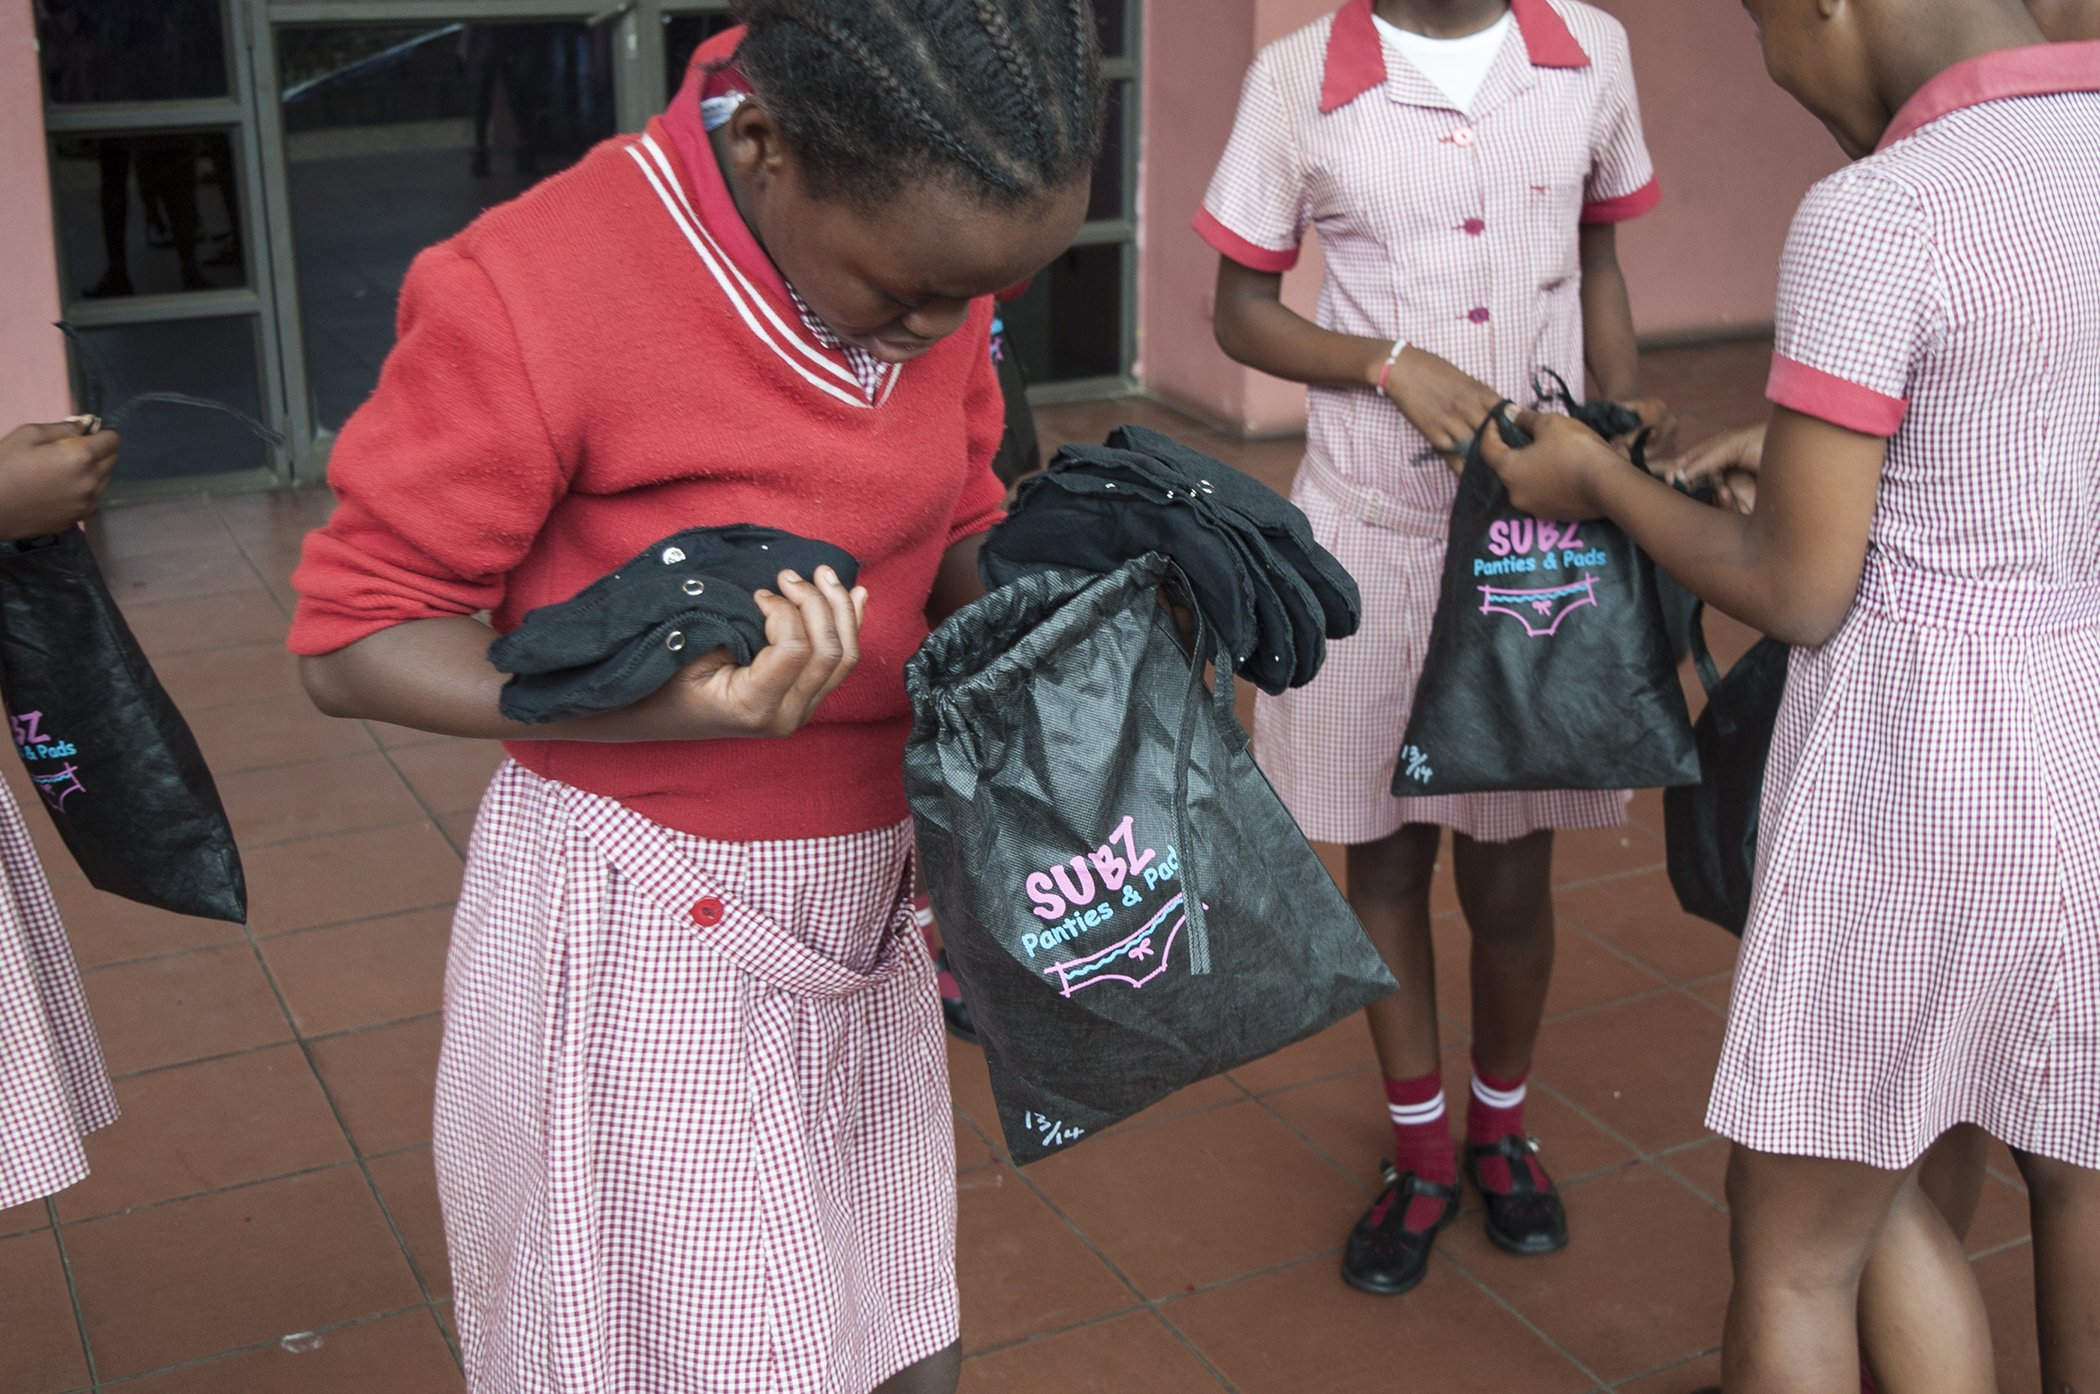 south-africa-mhm-schools-003.jpg__2100x1394_q85_crop_subject_location-1050,695_subsampling-2_upscale.jpg